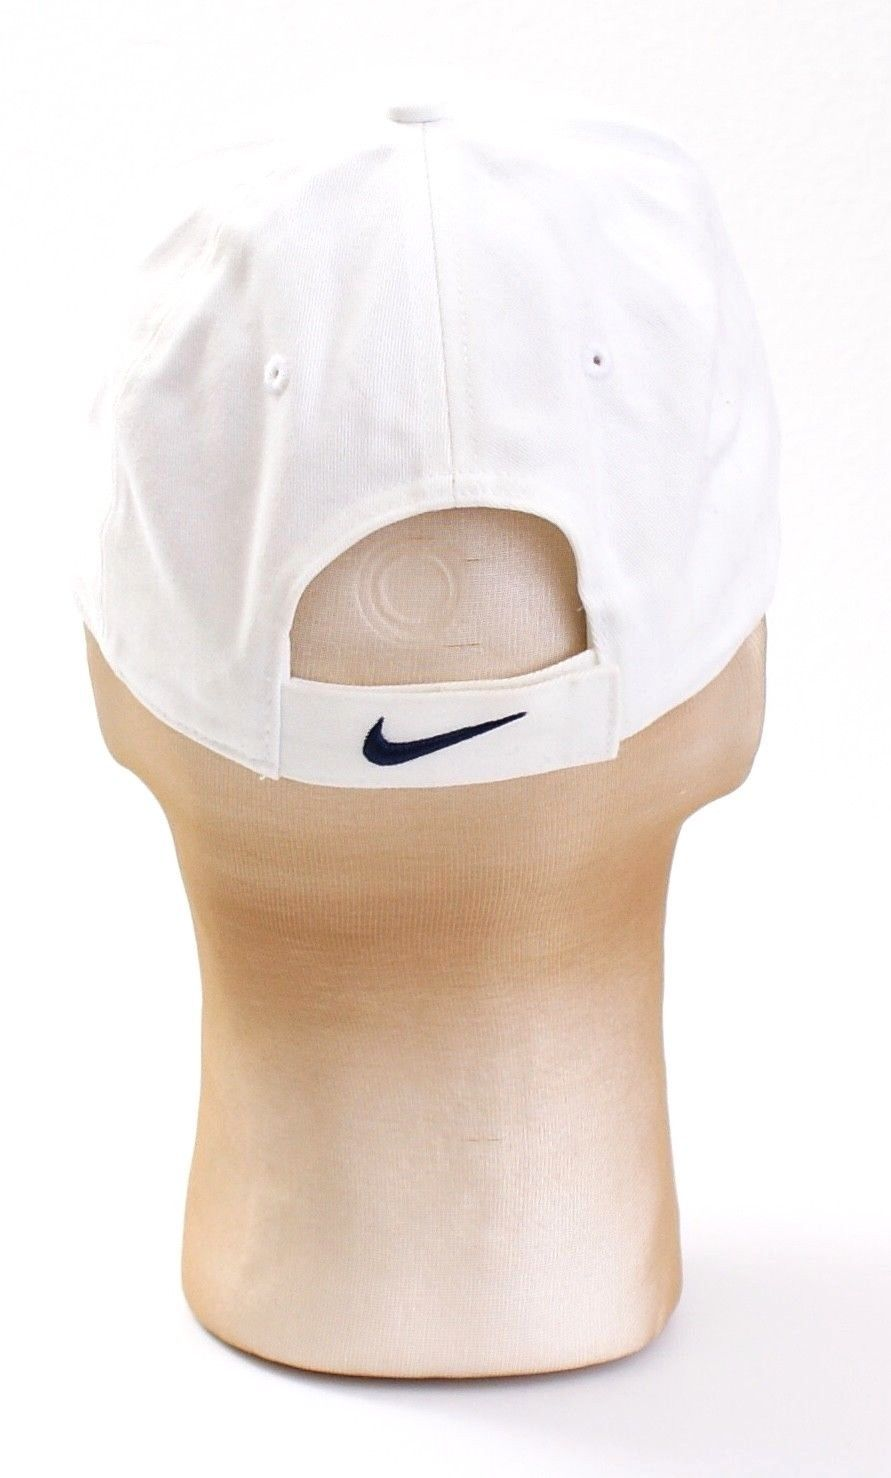 Nike Collegiate White Just Do It Air Force Adjustable Hat Cap Men's NWT